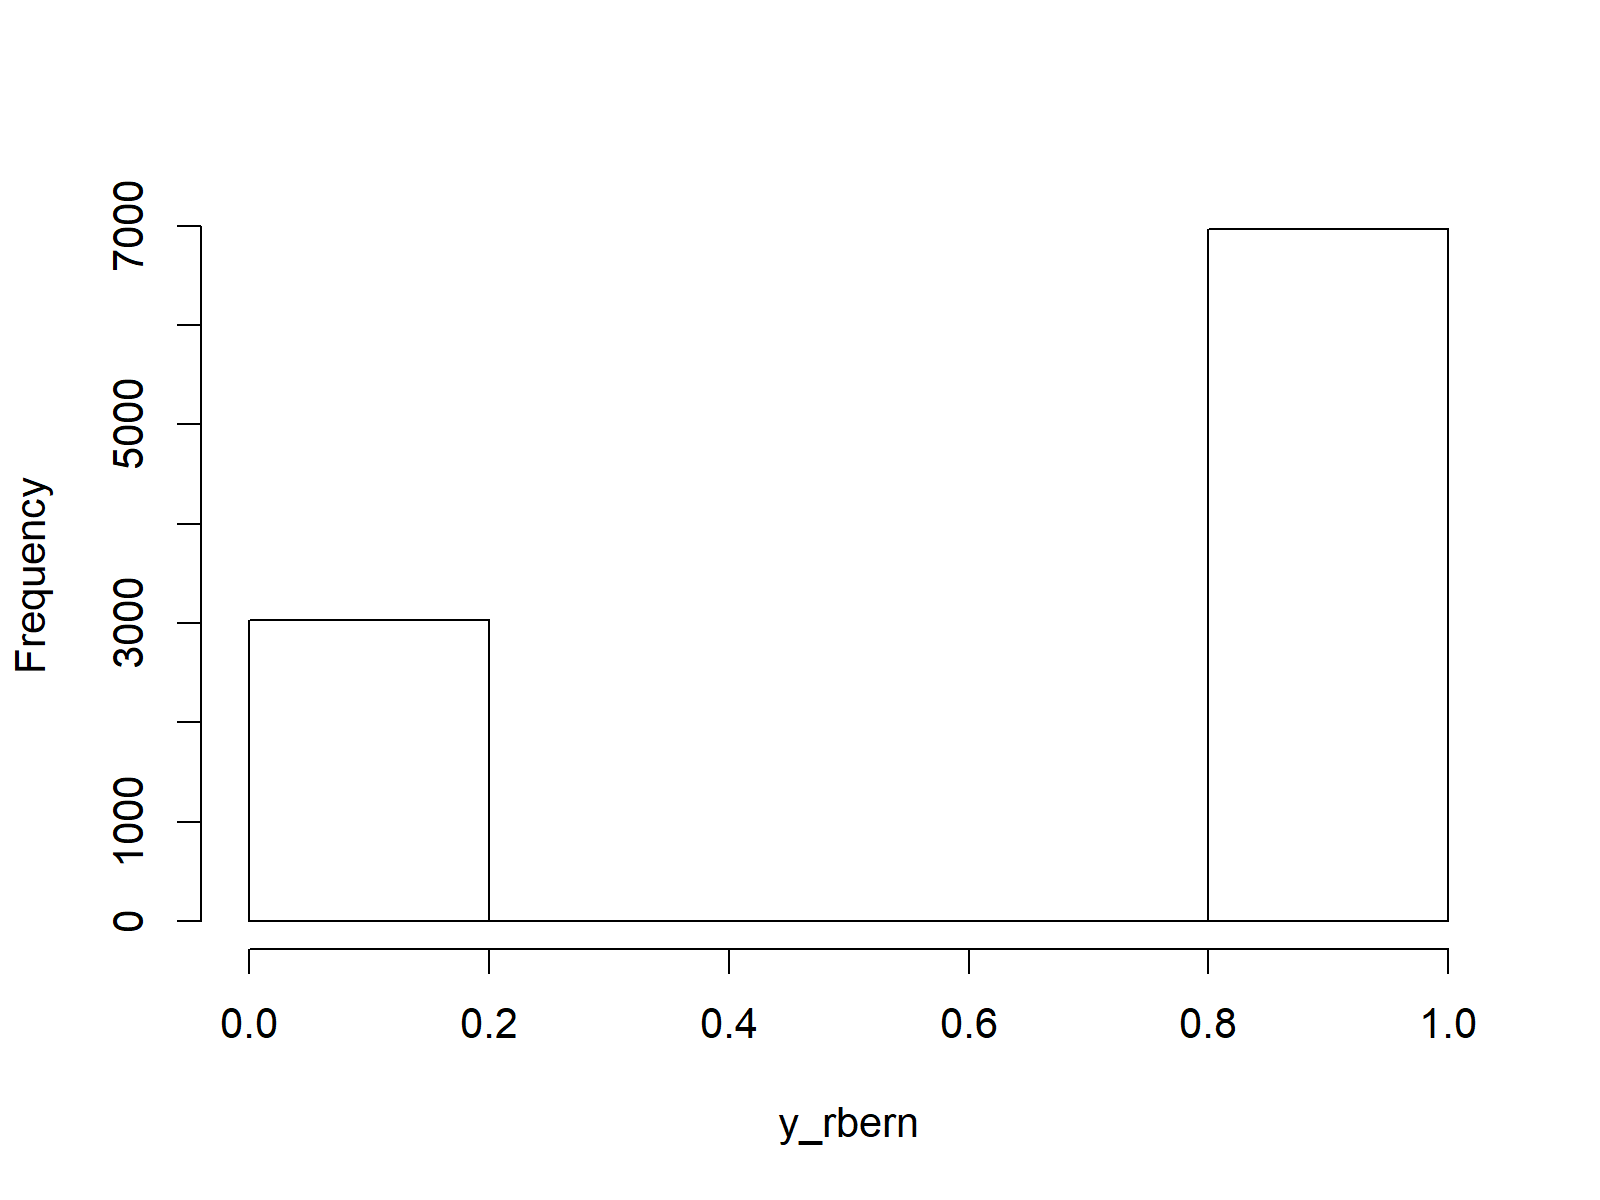 Bernoulli random numbers plot in R